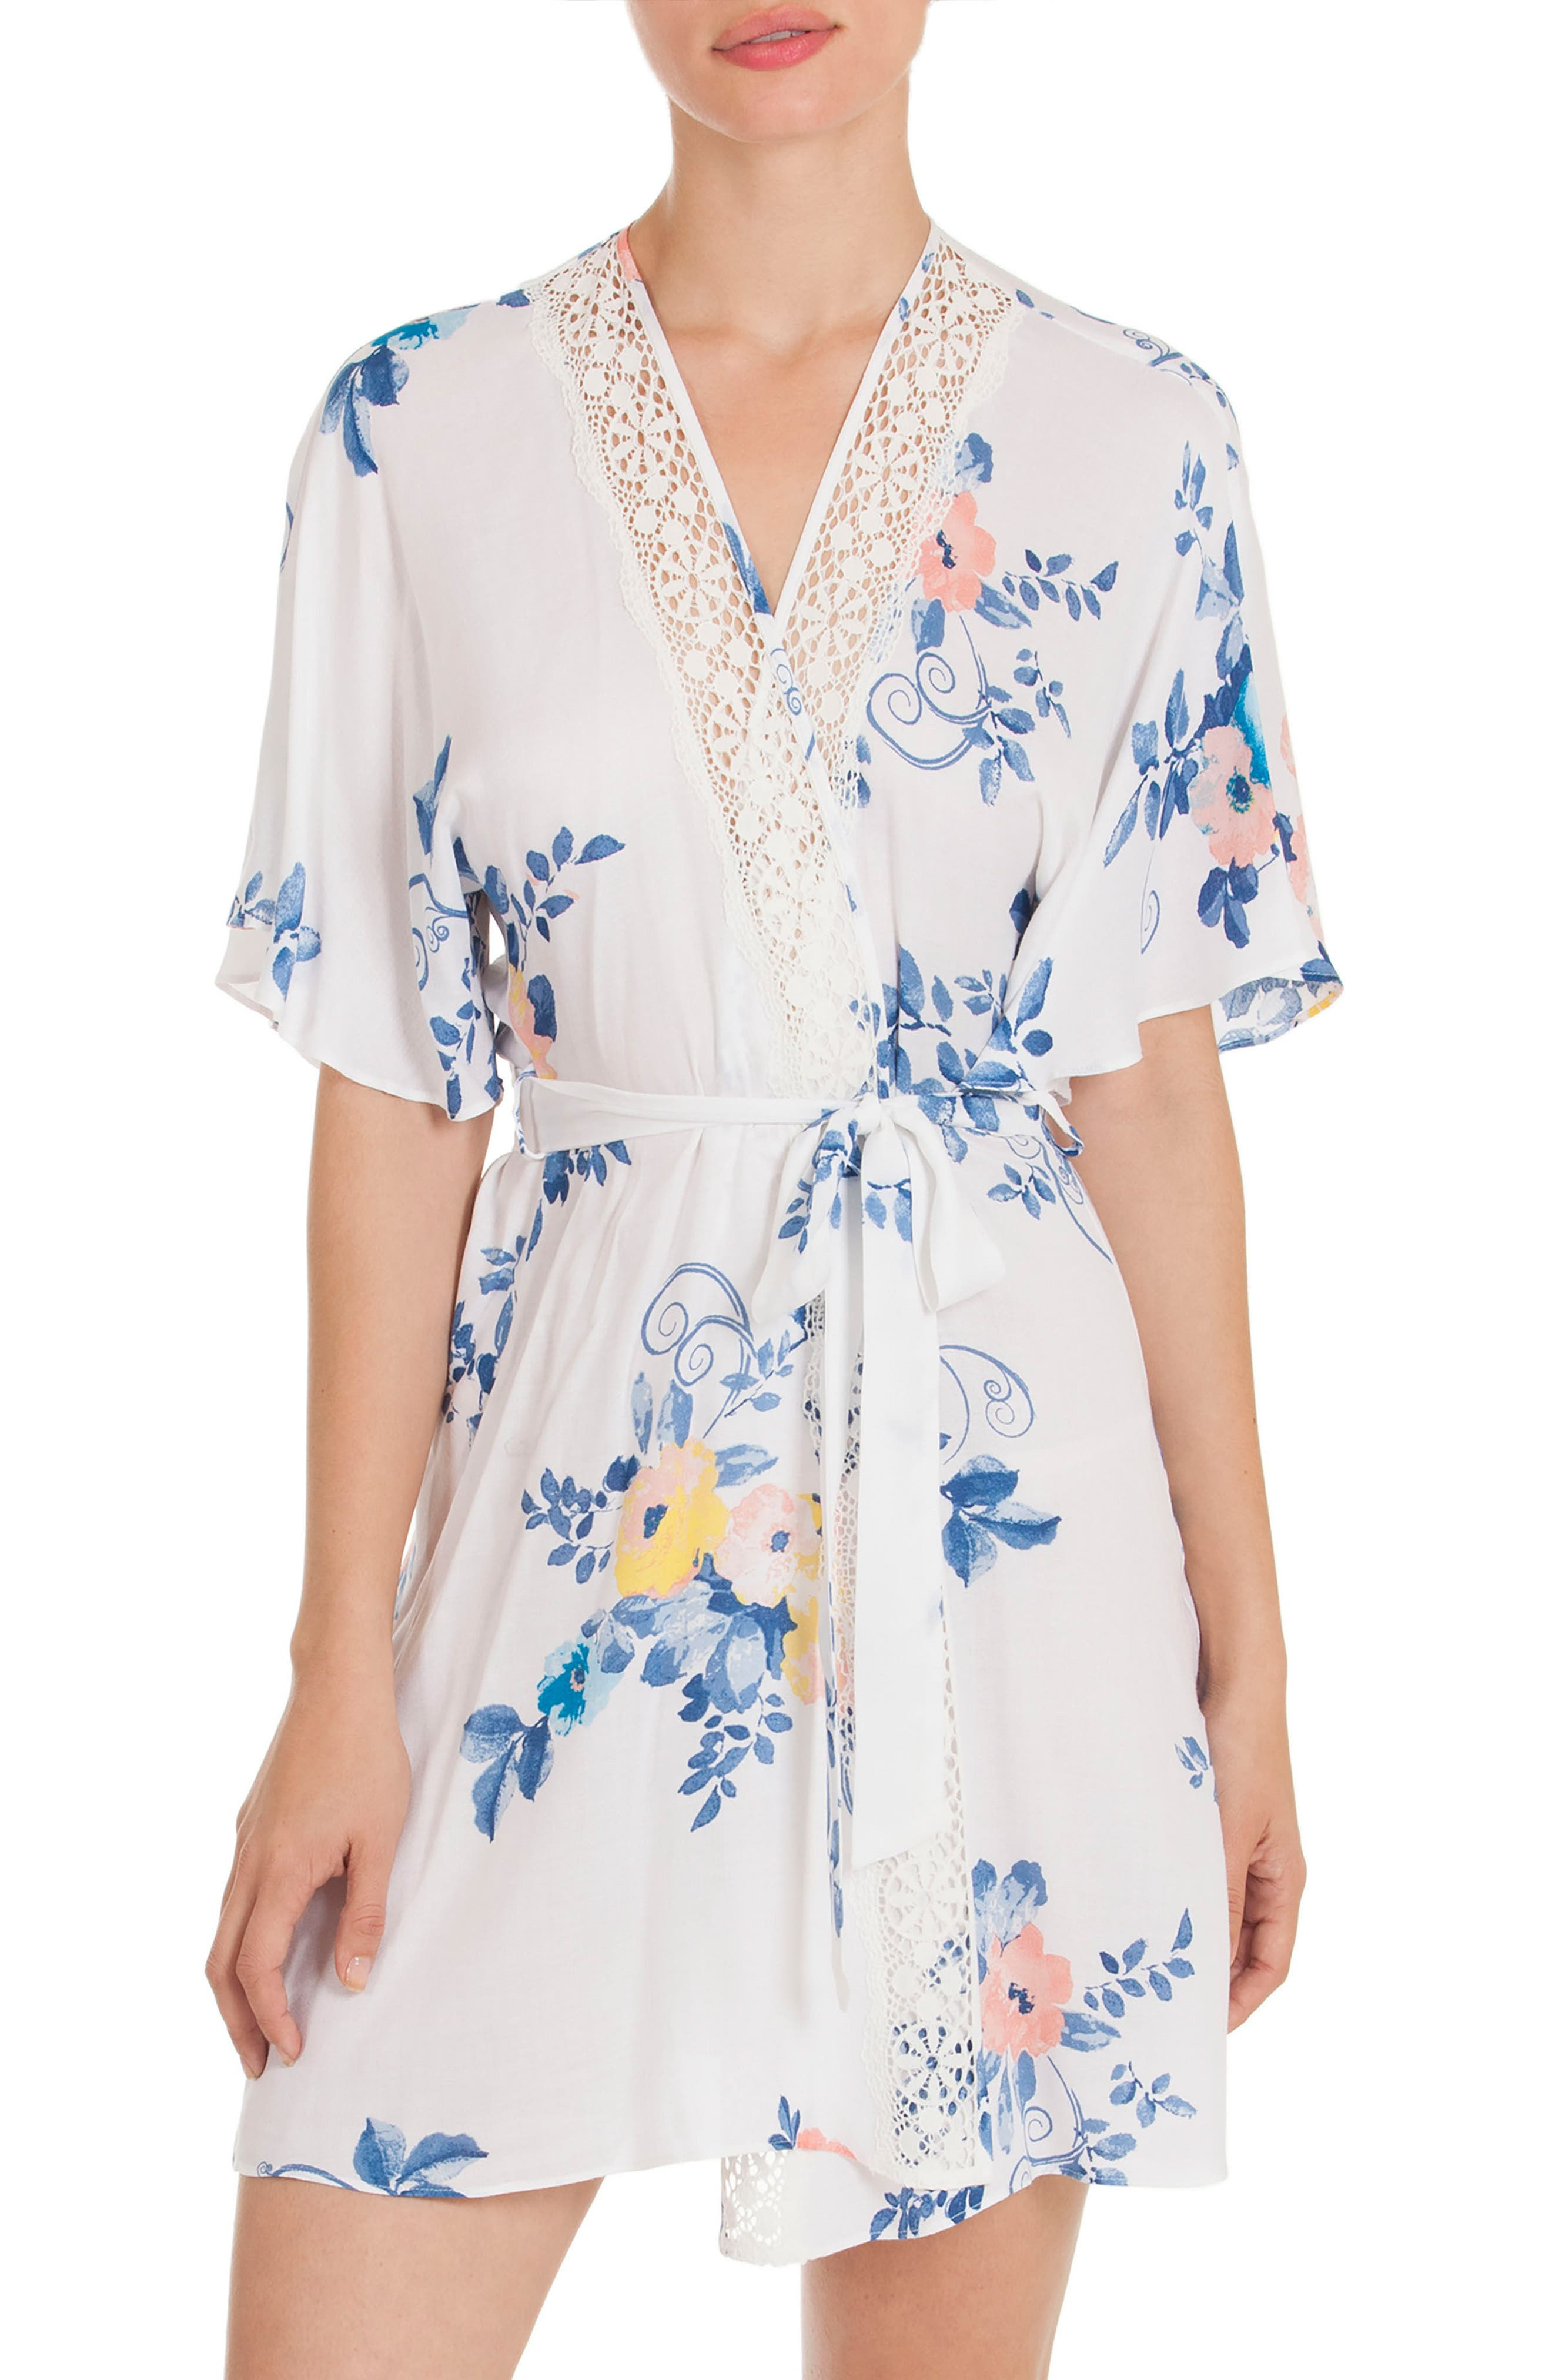 In Bloom by Jonquil Wrap